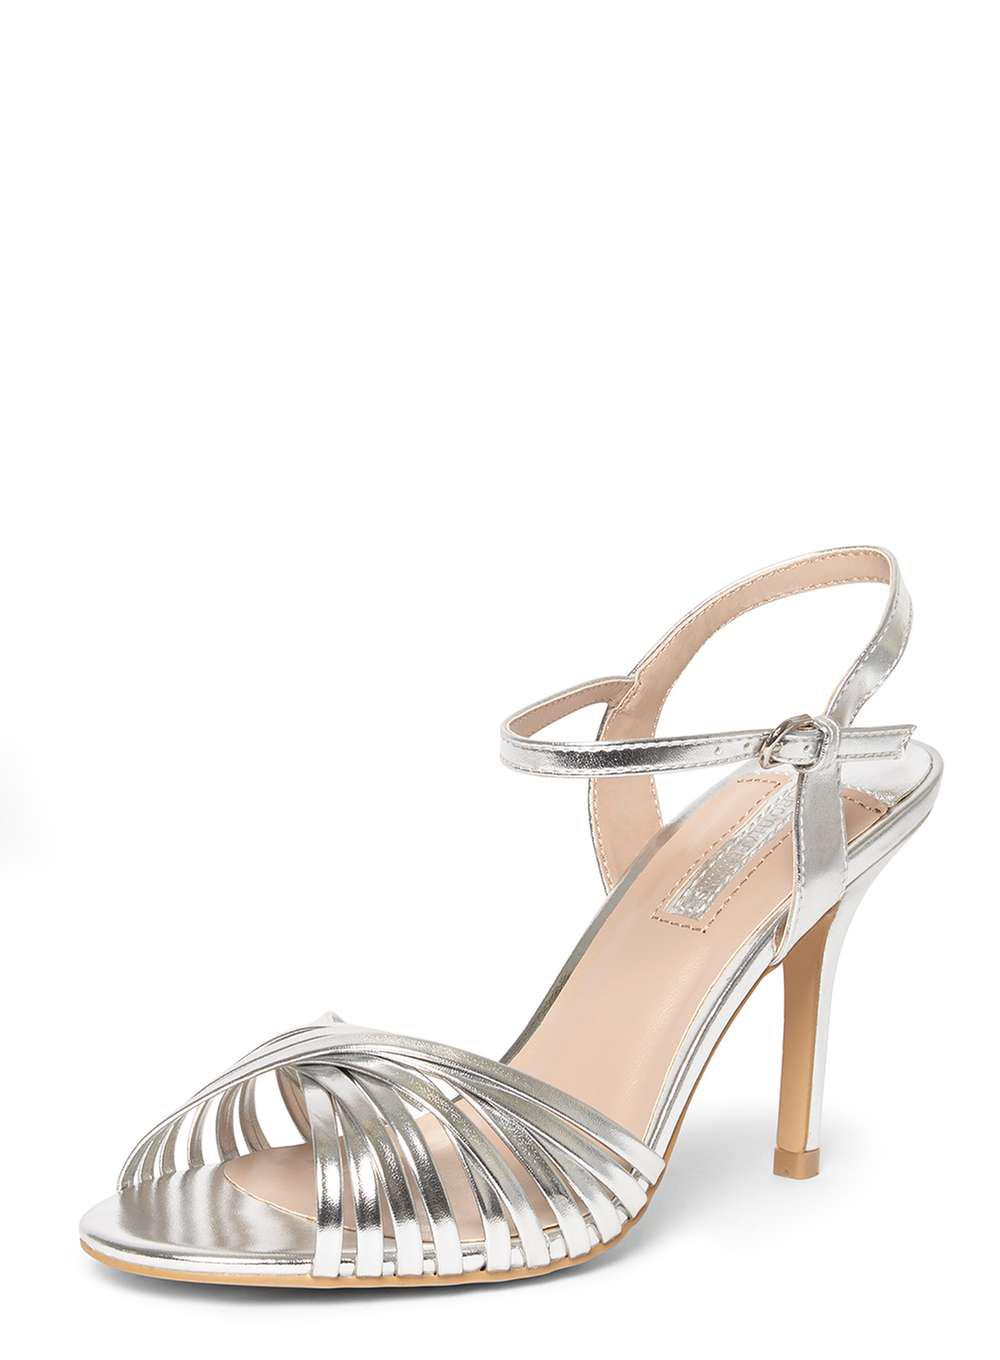 Dorothy Perkins Silver Nice Stppy Ankle Strap Sandals clearance choice lowest price for sale sale outlet locations CVIbOvANzc